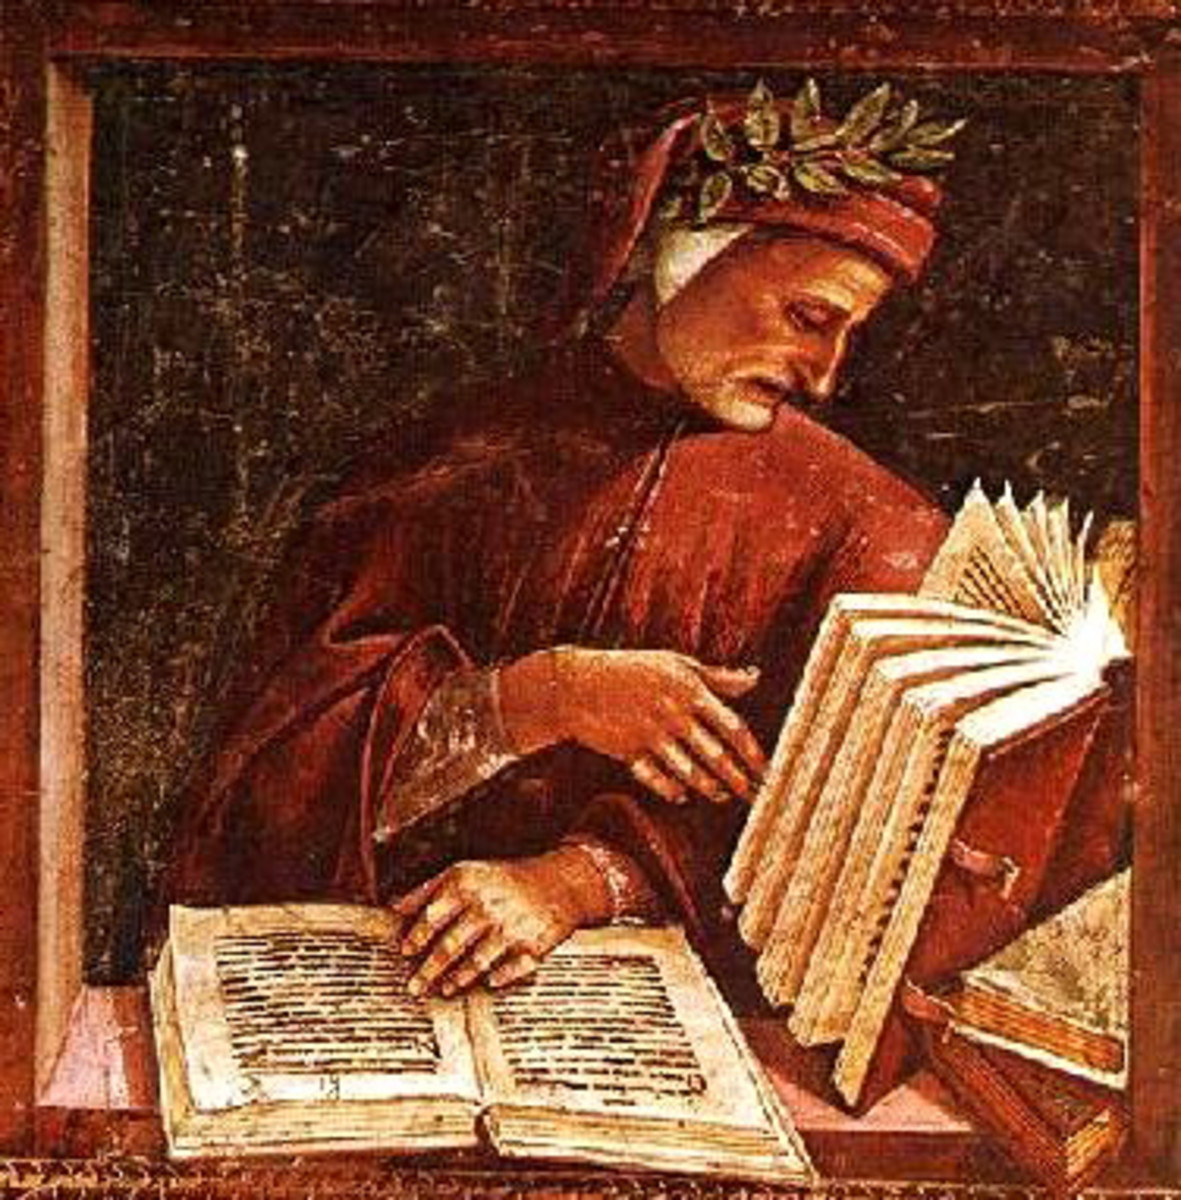 dante alighieri the divine comedy. the inferno essay The character of dante in the divine comedy who descended into the inferno caused me to stop and think about this awful place as the reader i got to take an.